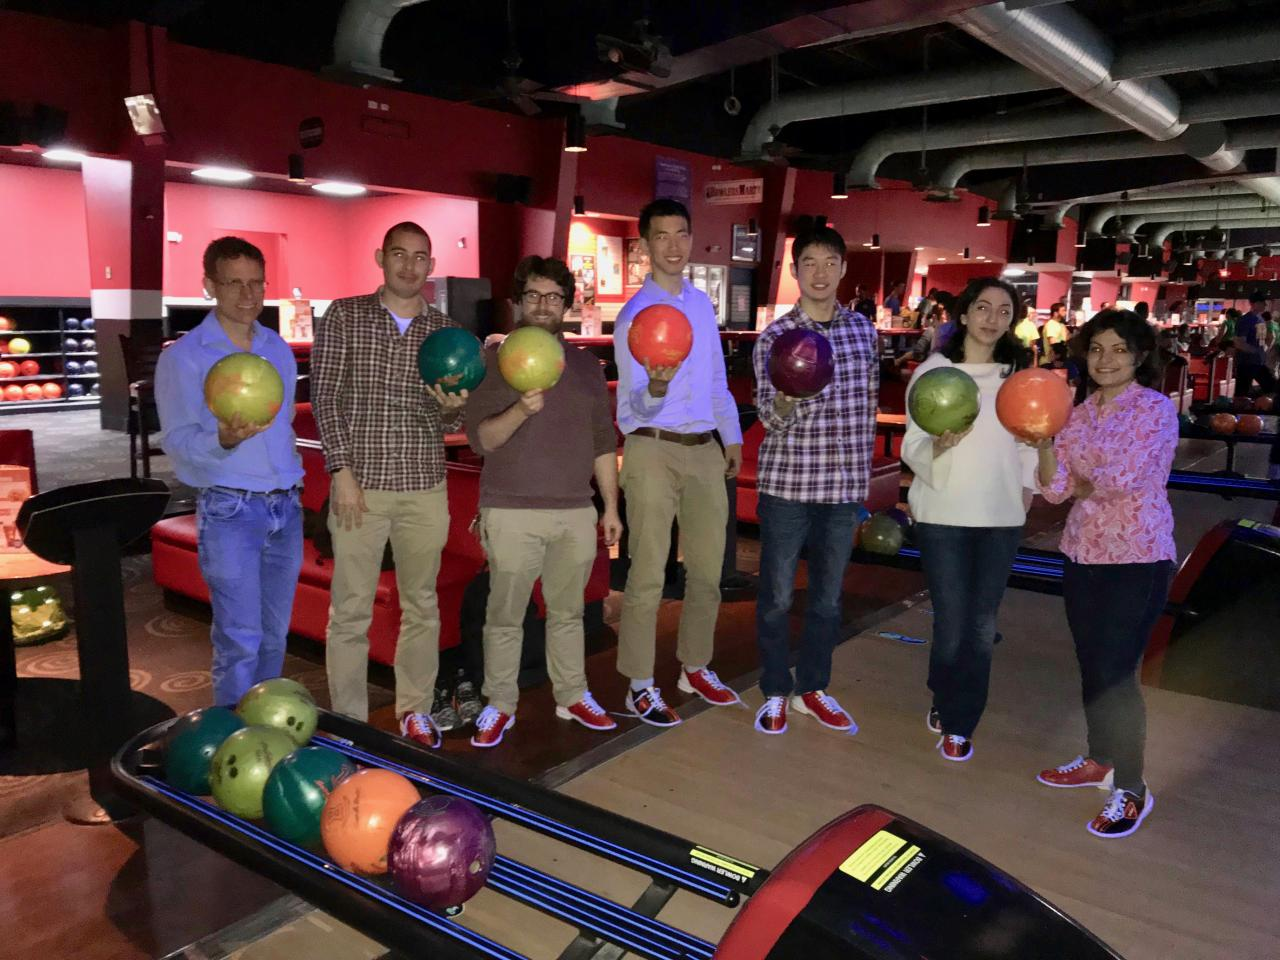 Mitzi group photo - Bowling